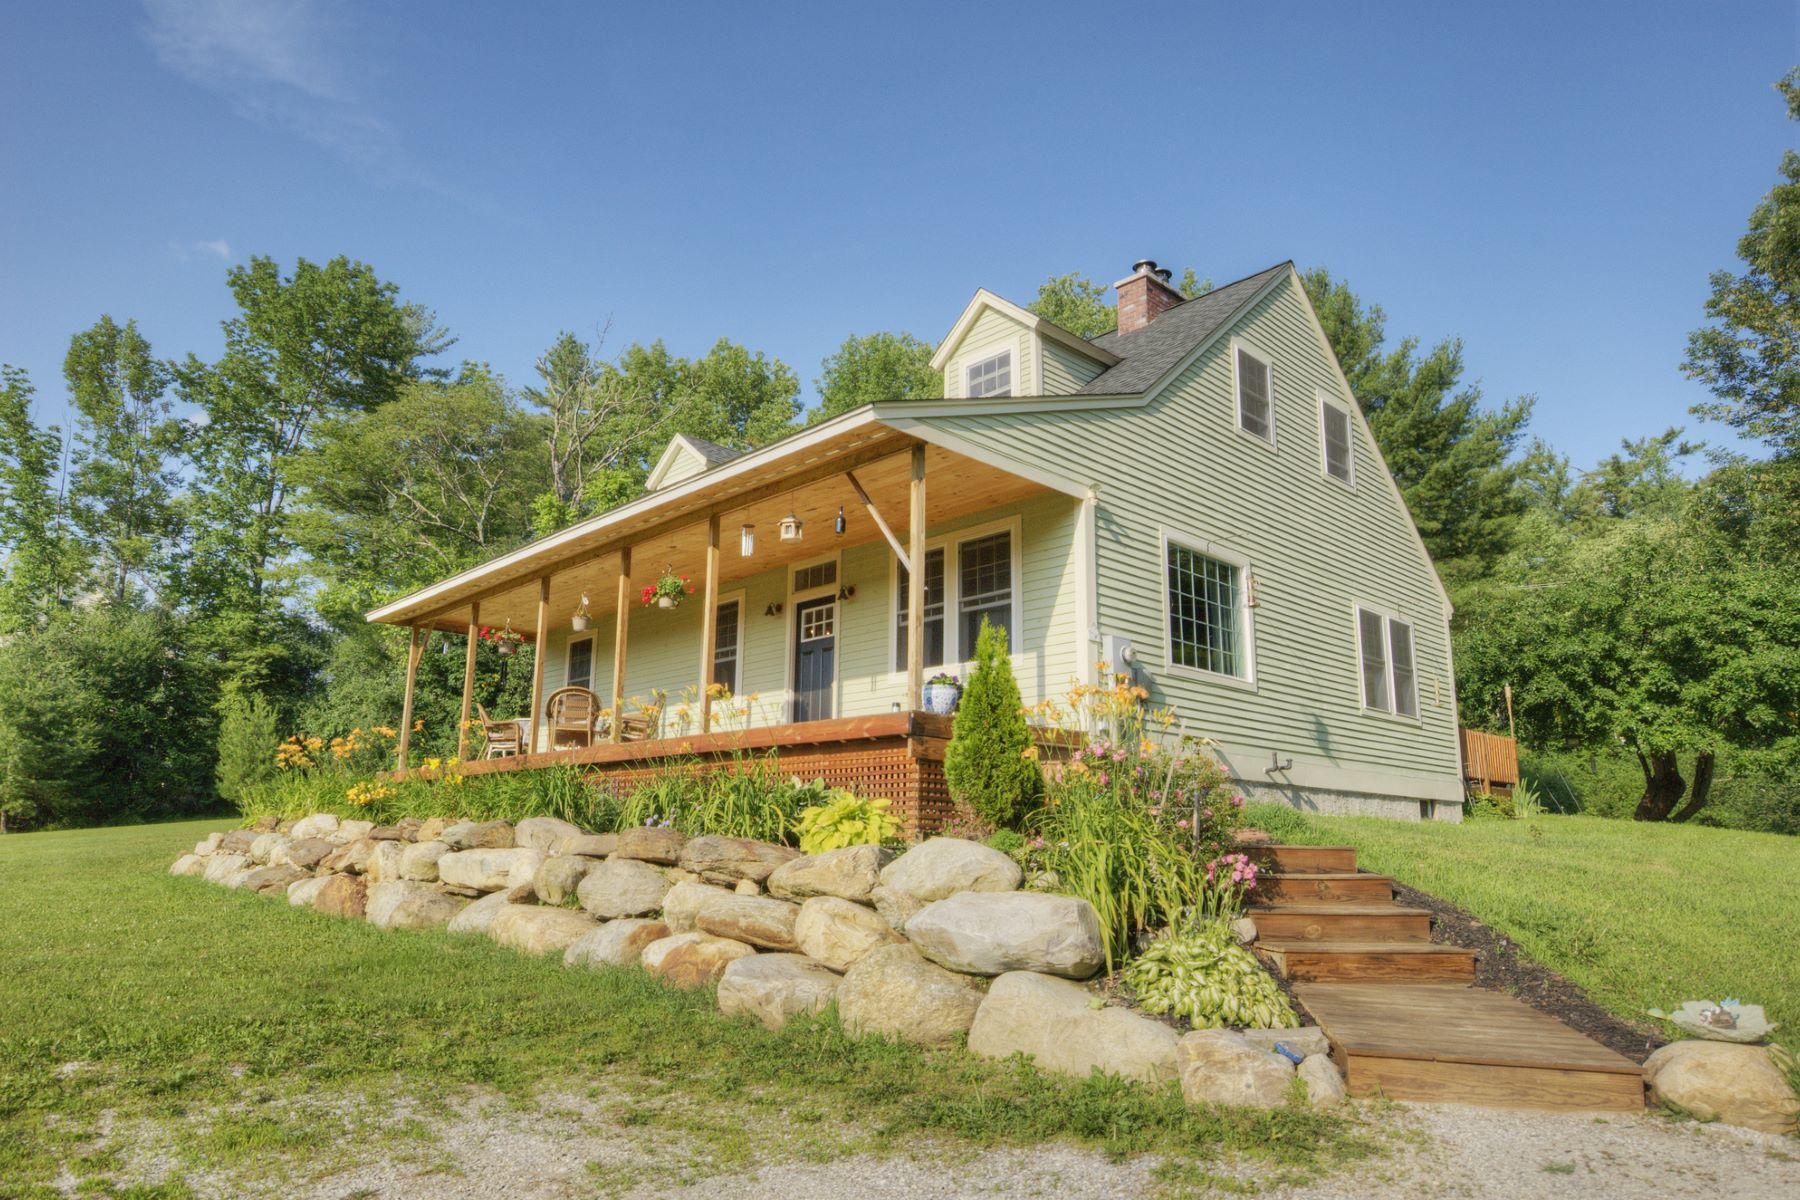 Single Family Home for Sale at Newly Built Amazing Home 280 Haven Hill Rd Wallingford, Vermont 05773 United States